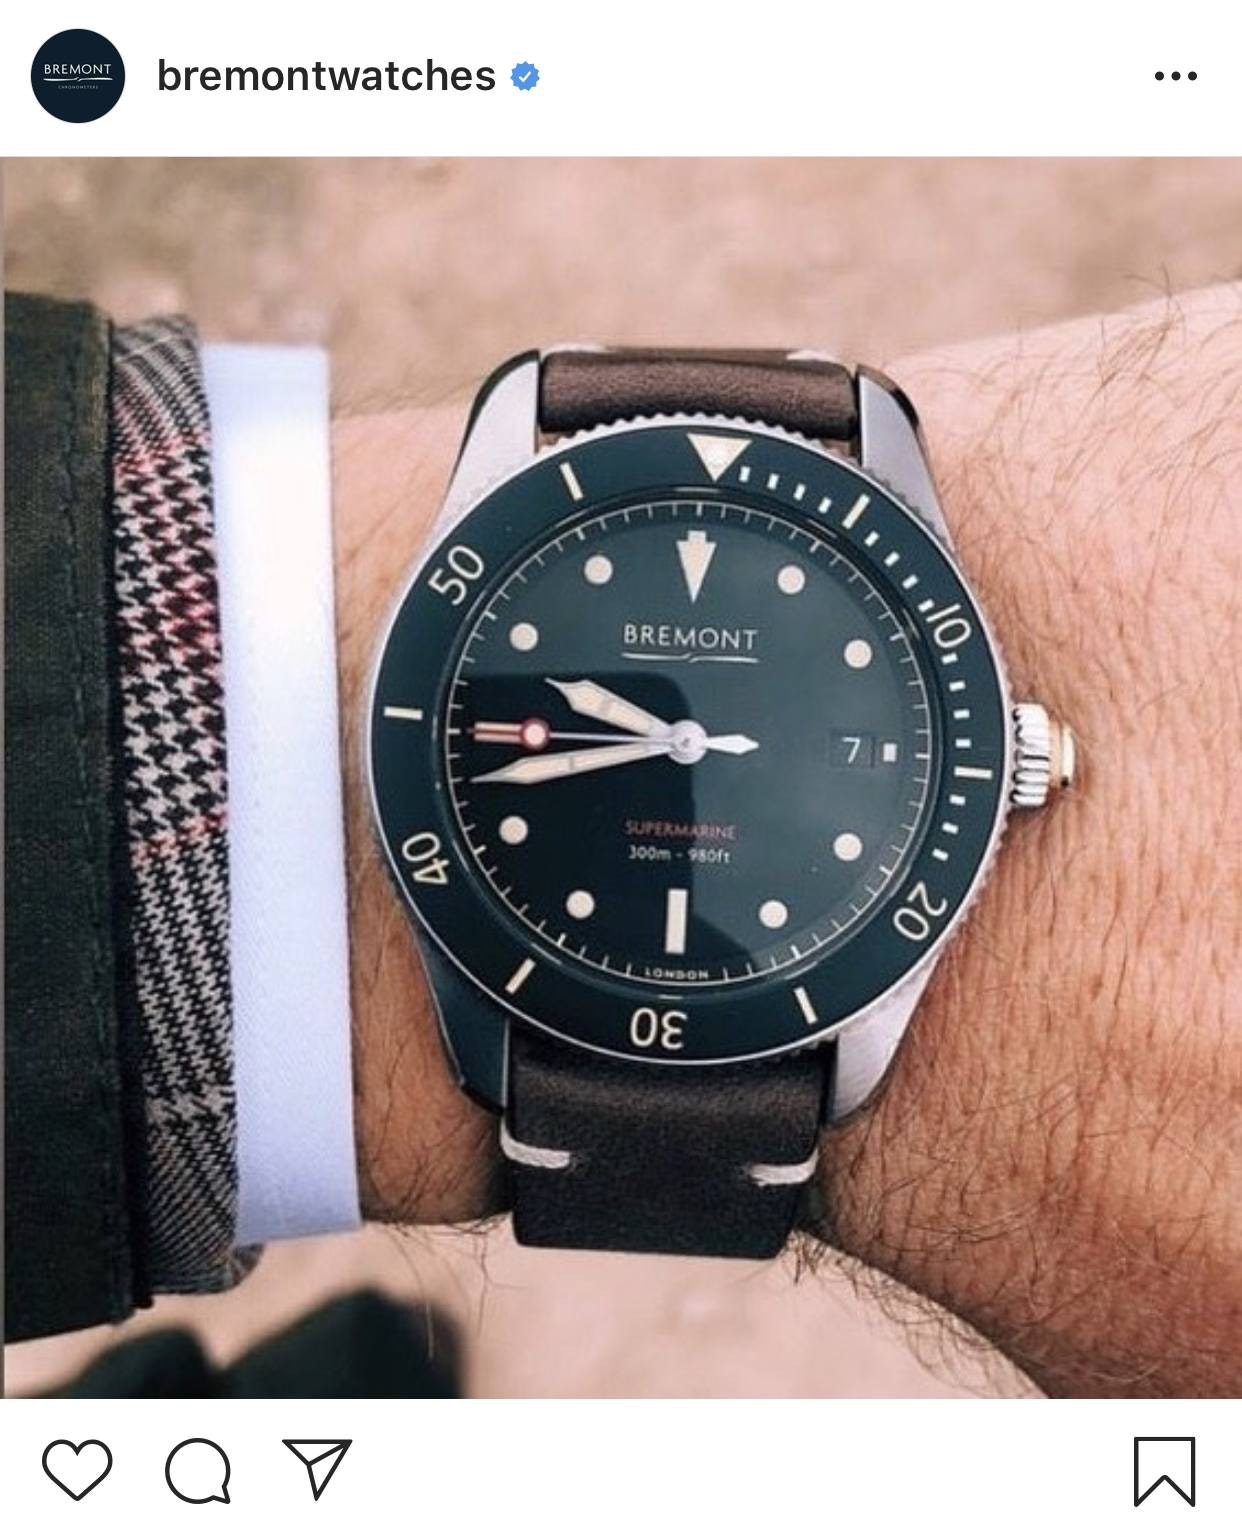 bremontwatches insta account